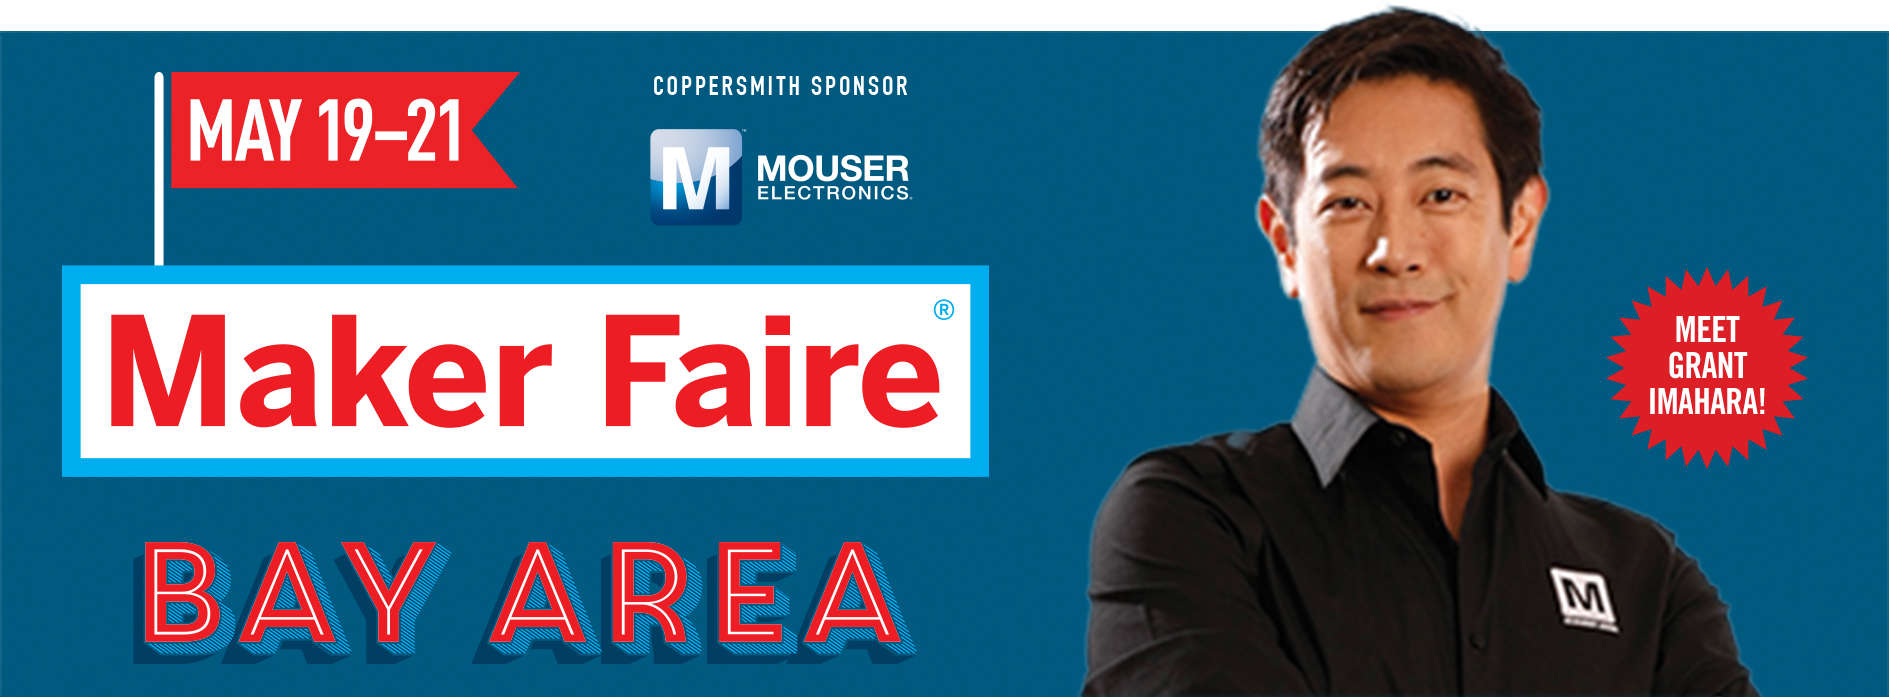 MakerFaire-Bay Area